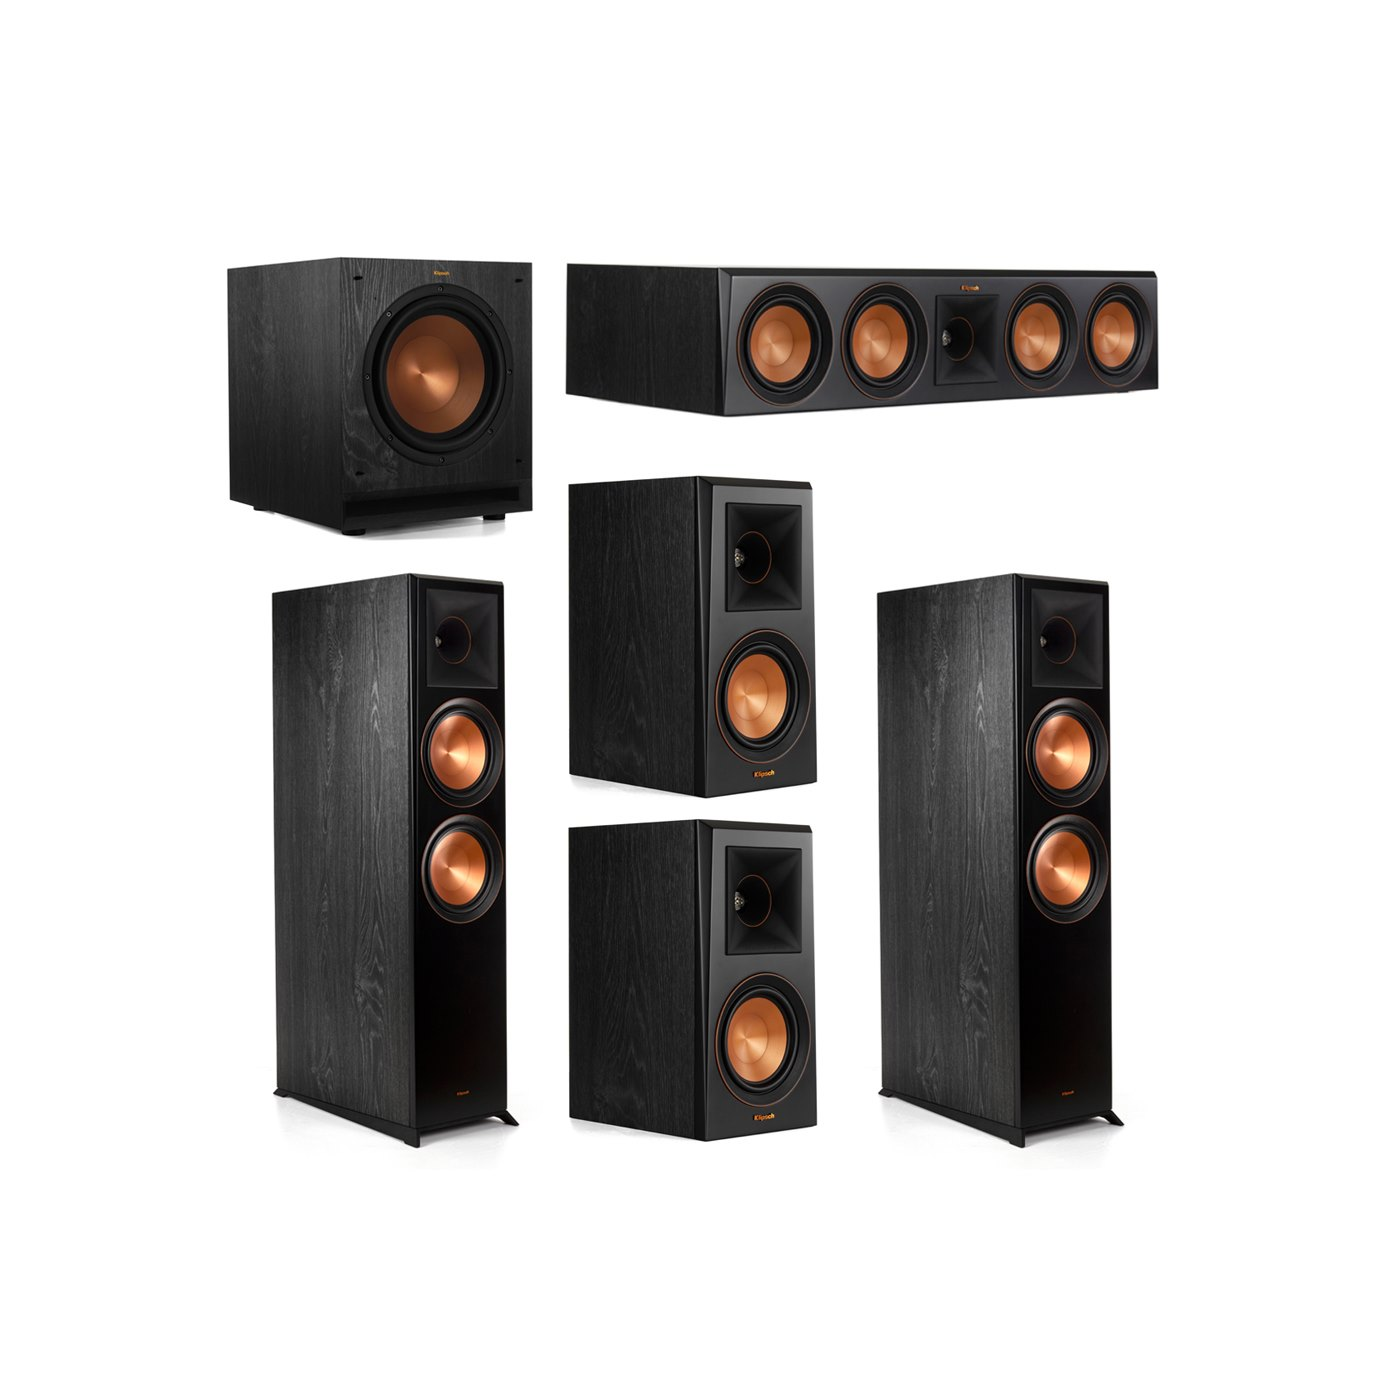 Klipsch 5.1.2 System - 2 RP-8060FA Dolby Atmos Speakers, 1 RP-504C, 2 RP-500M Speakers, 1 SPL-100